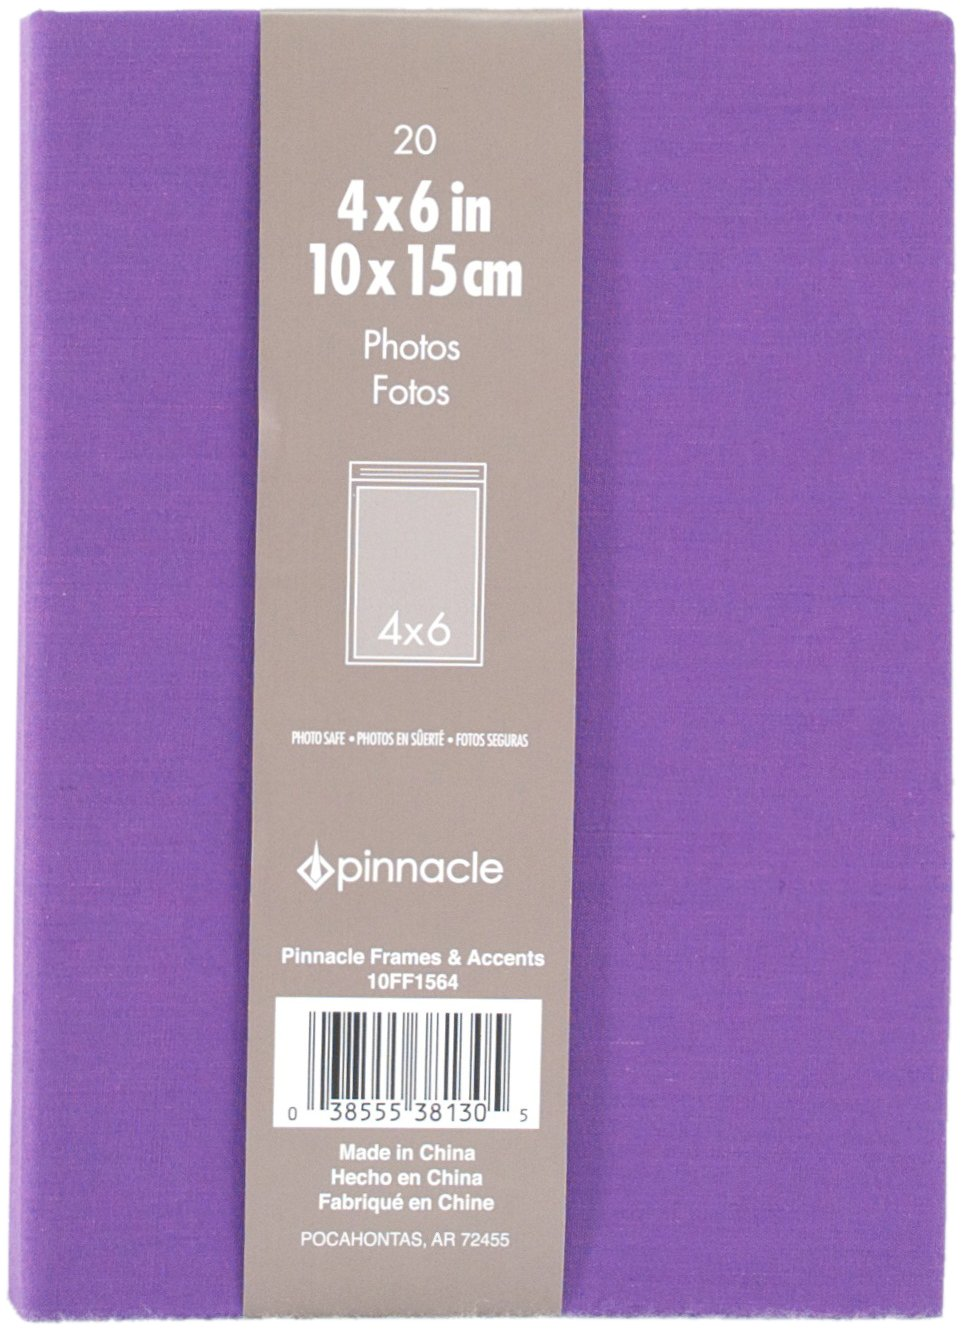 Amazon.com: Pinnacle Frames and Accents Purple Book Cloth 20-Pocket ...